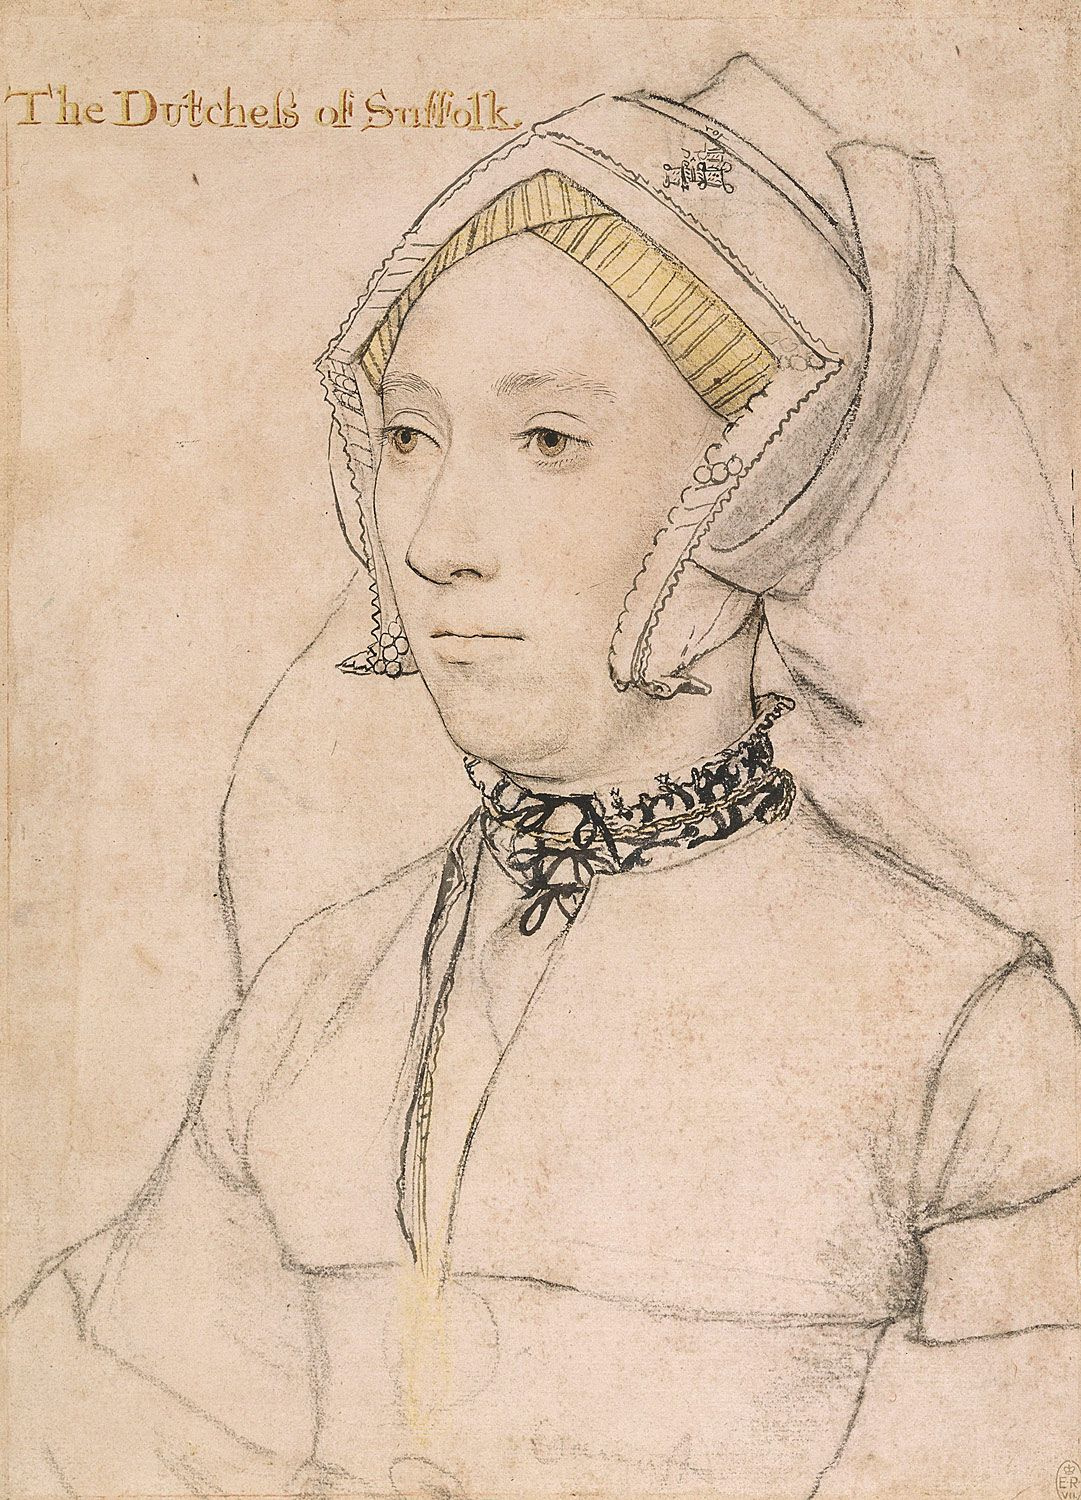 Portrait of Katherine, Duchess of Suffolk. c.1534-36